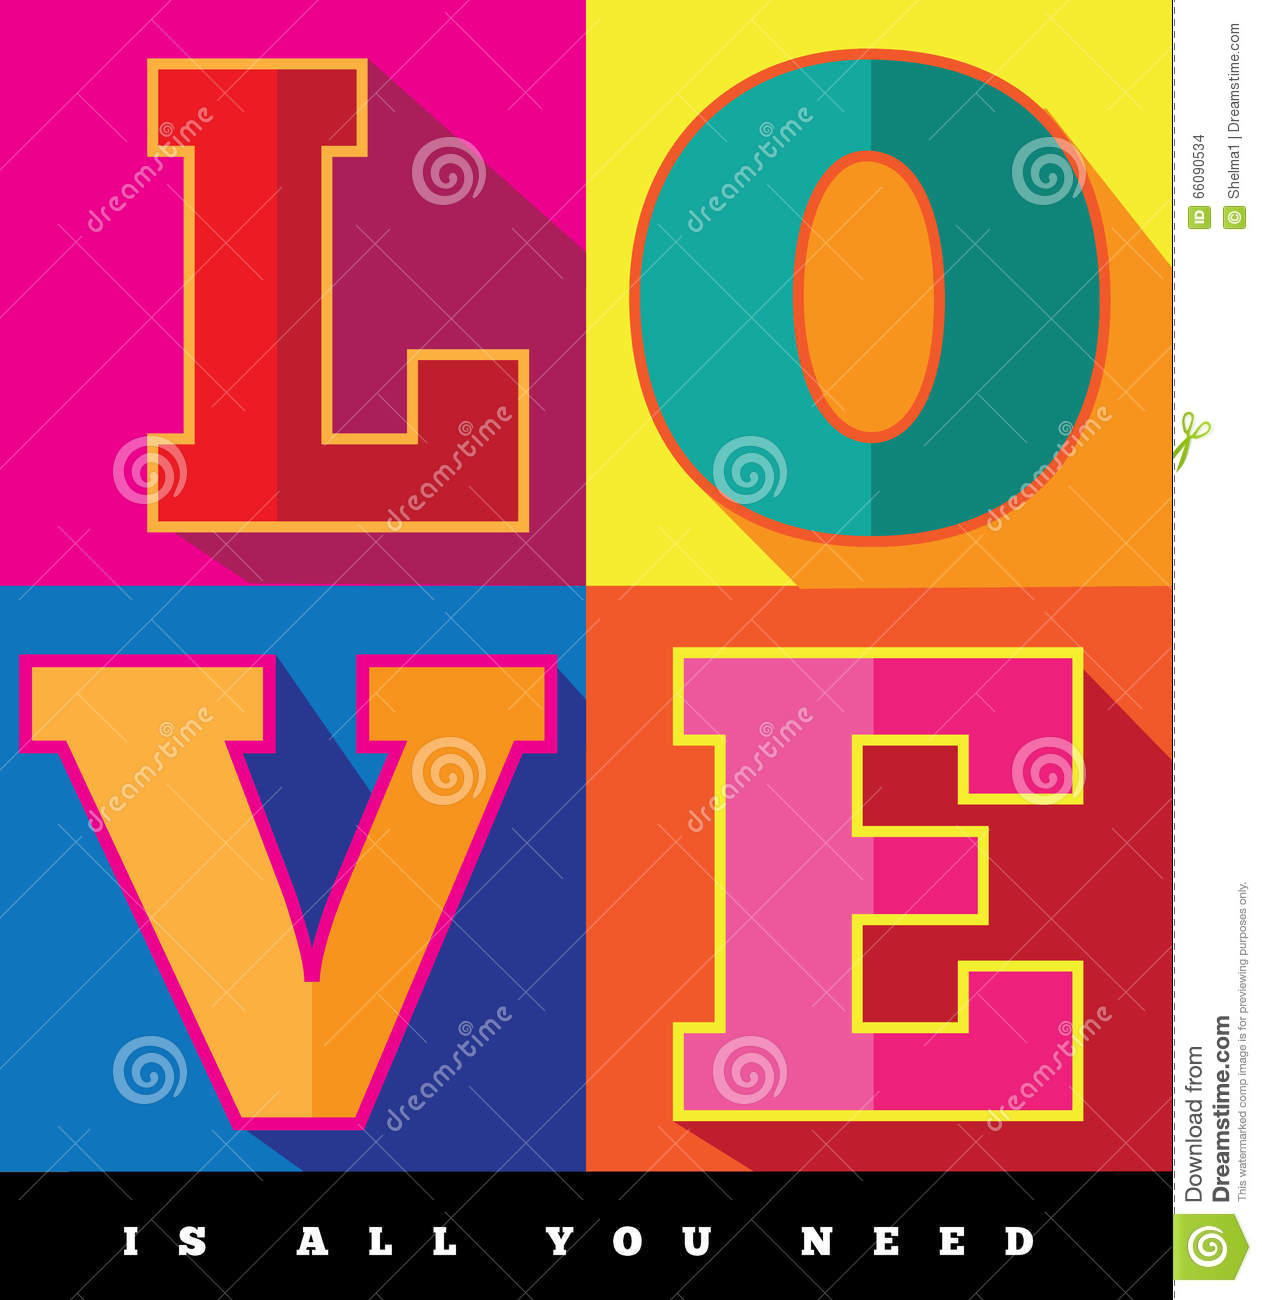 Poster design 60s - Love Is All You Need Flat Design Pop Art Poster Stock Images